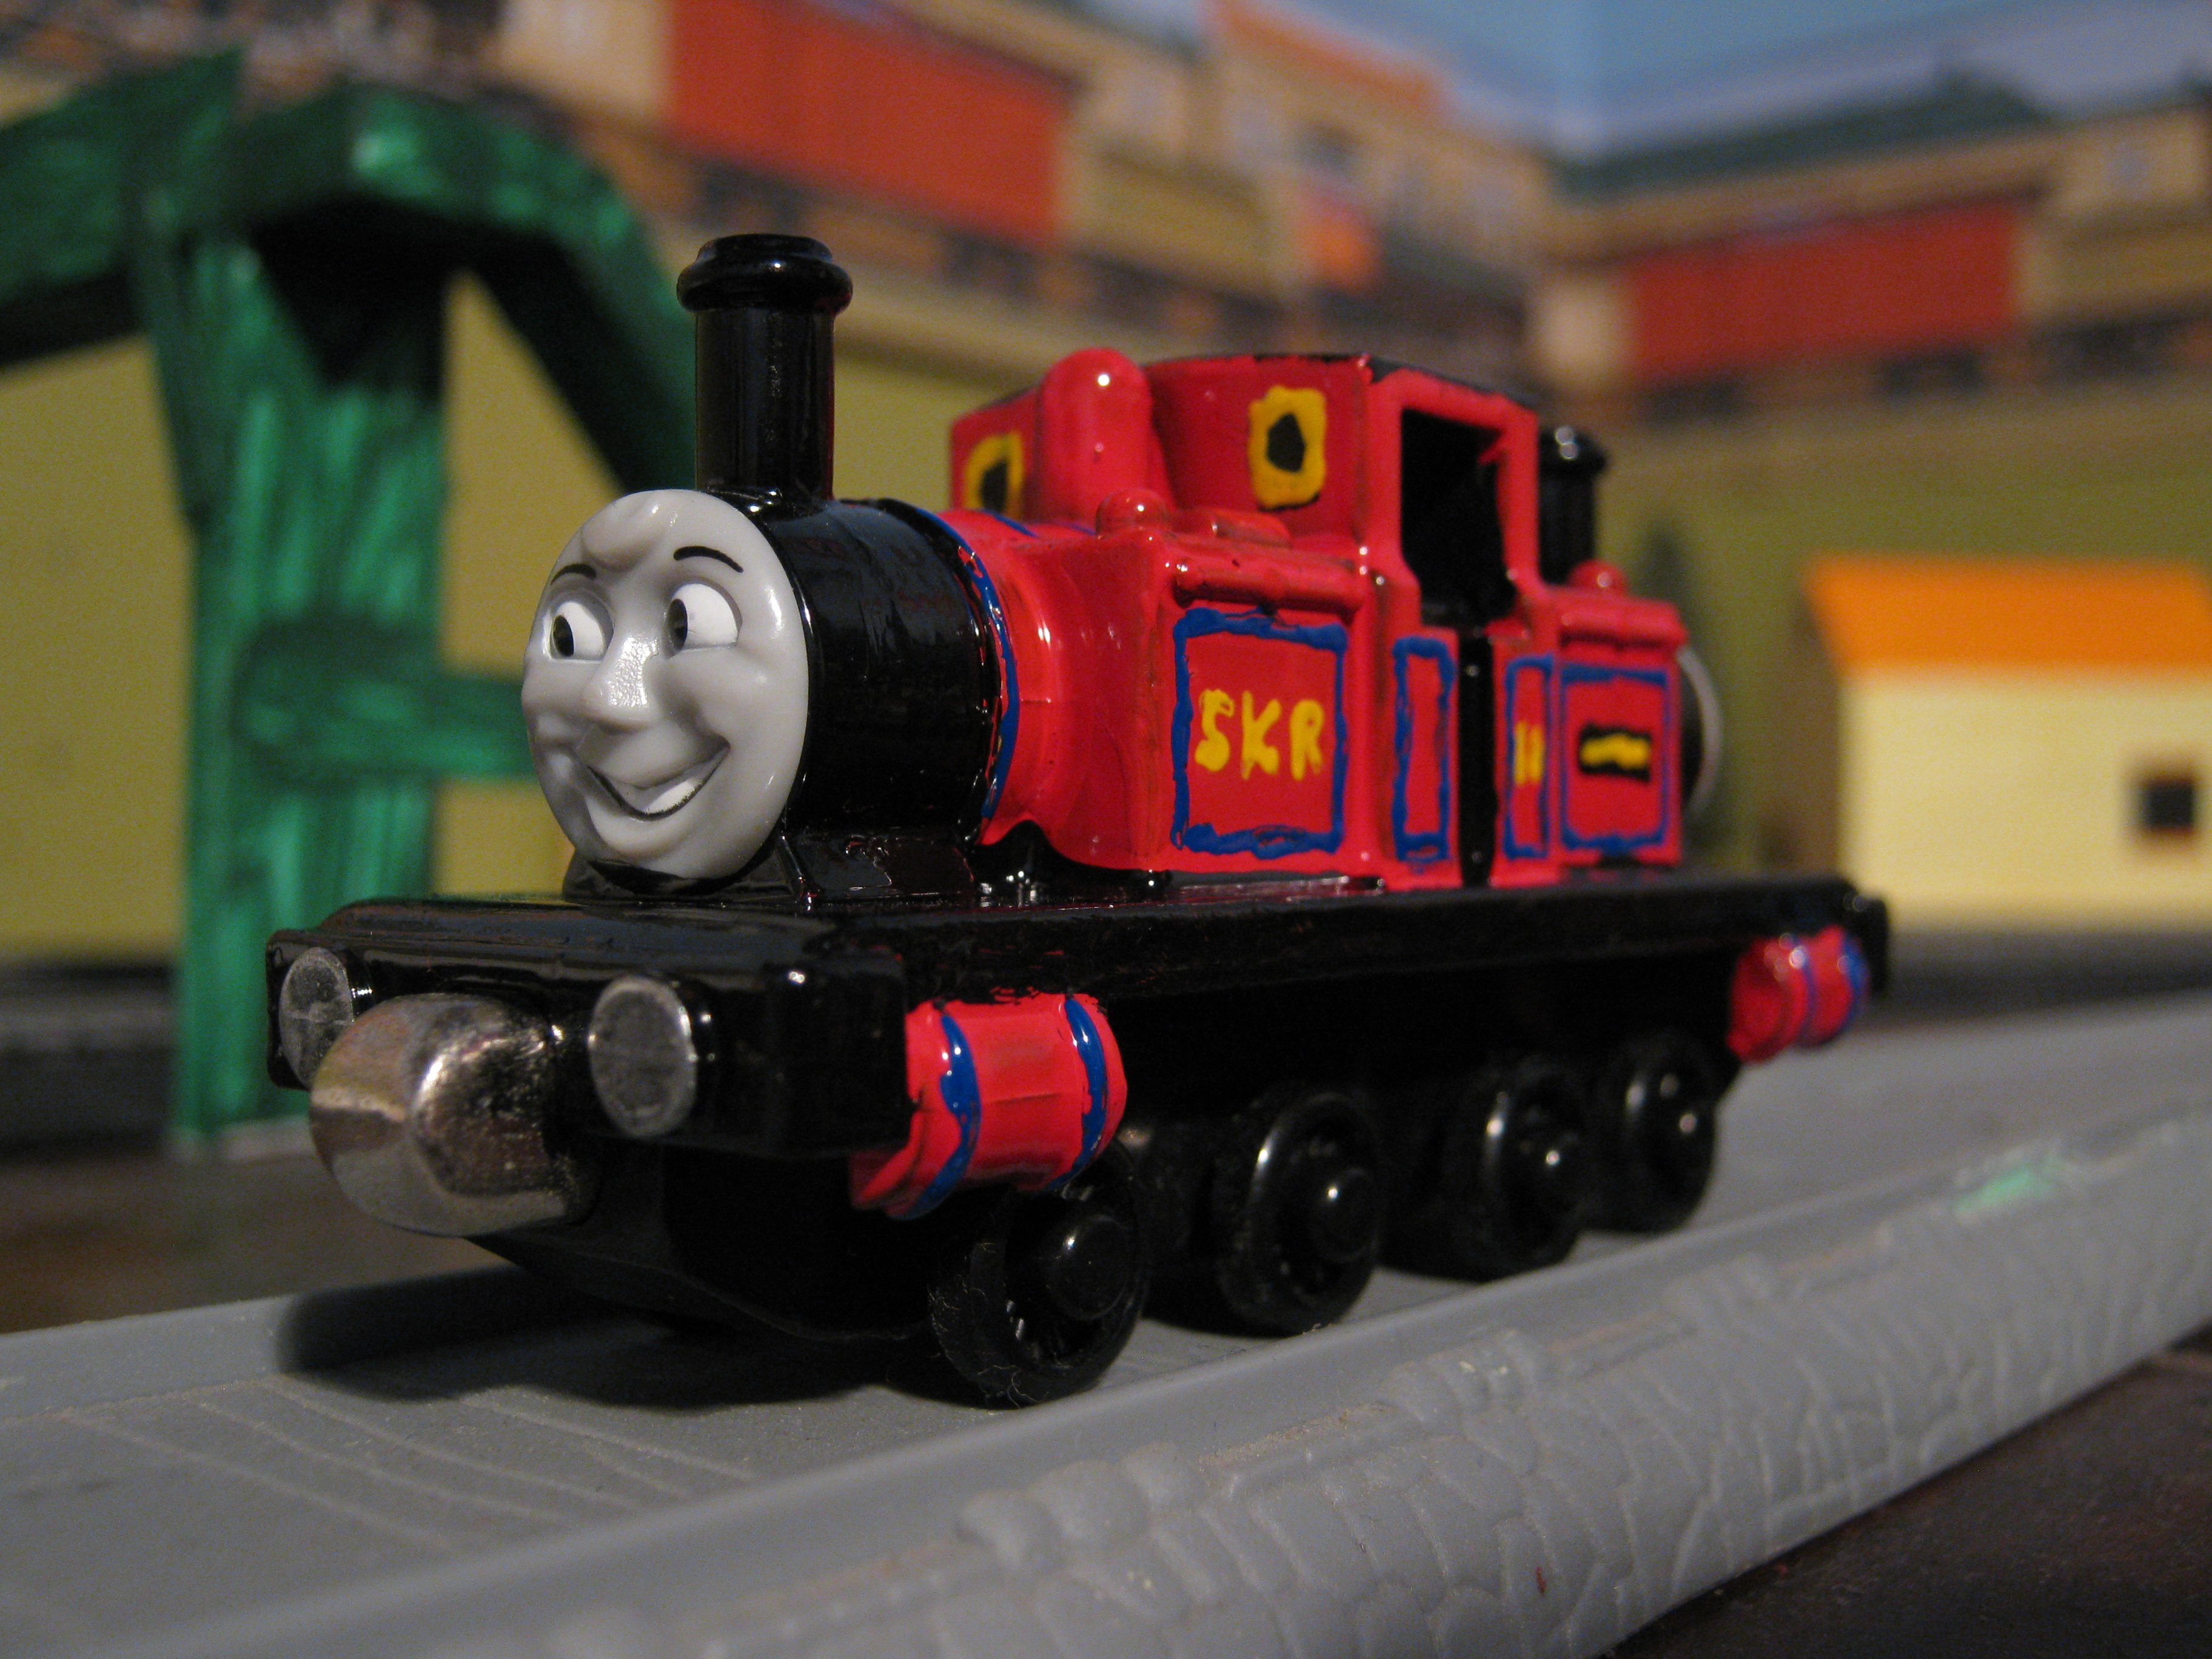 Image boco in trainz thomas and friends png scratchpad fandom - Modal Title